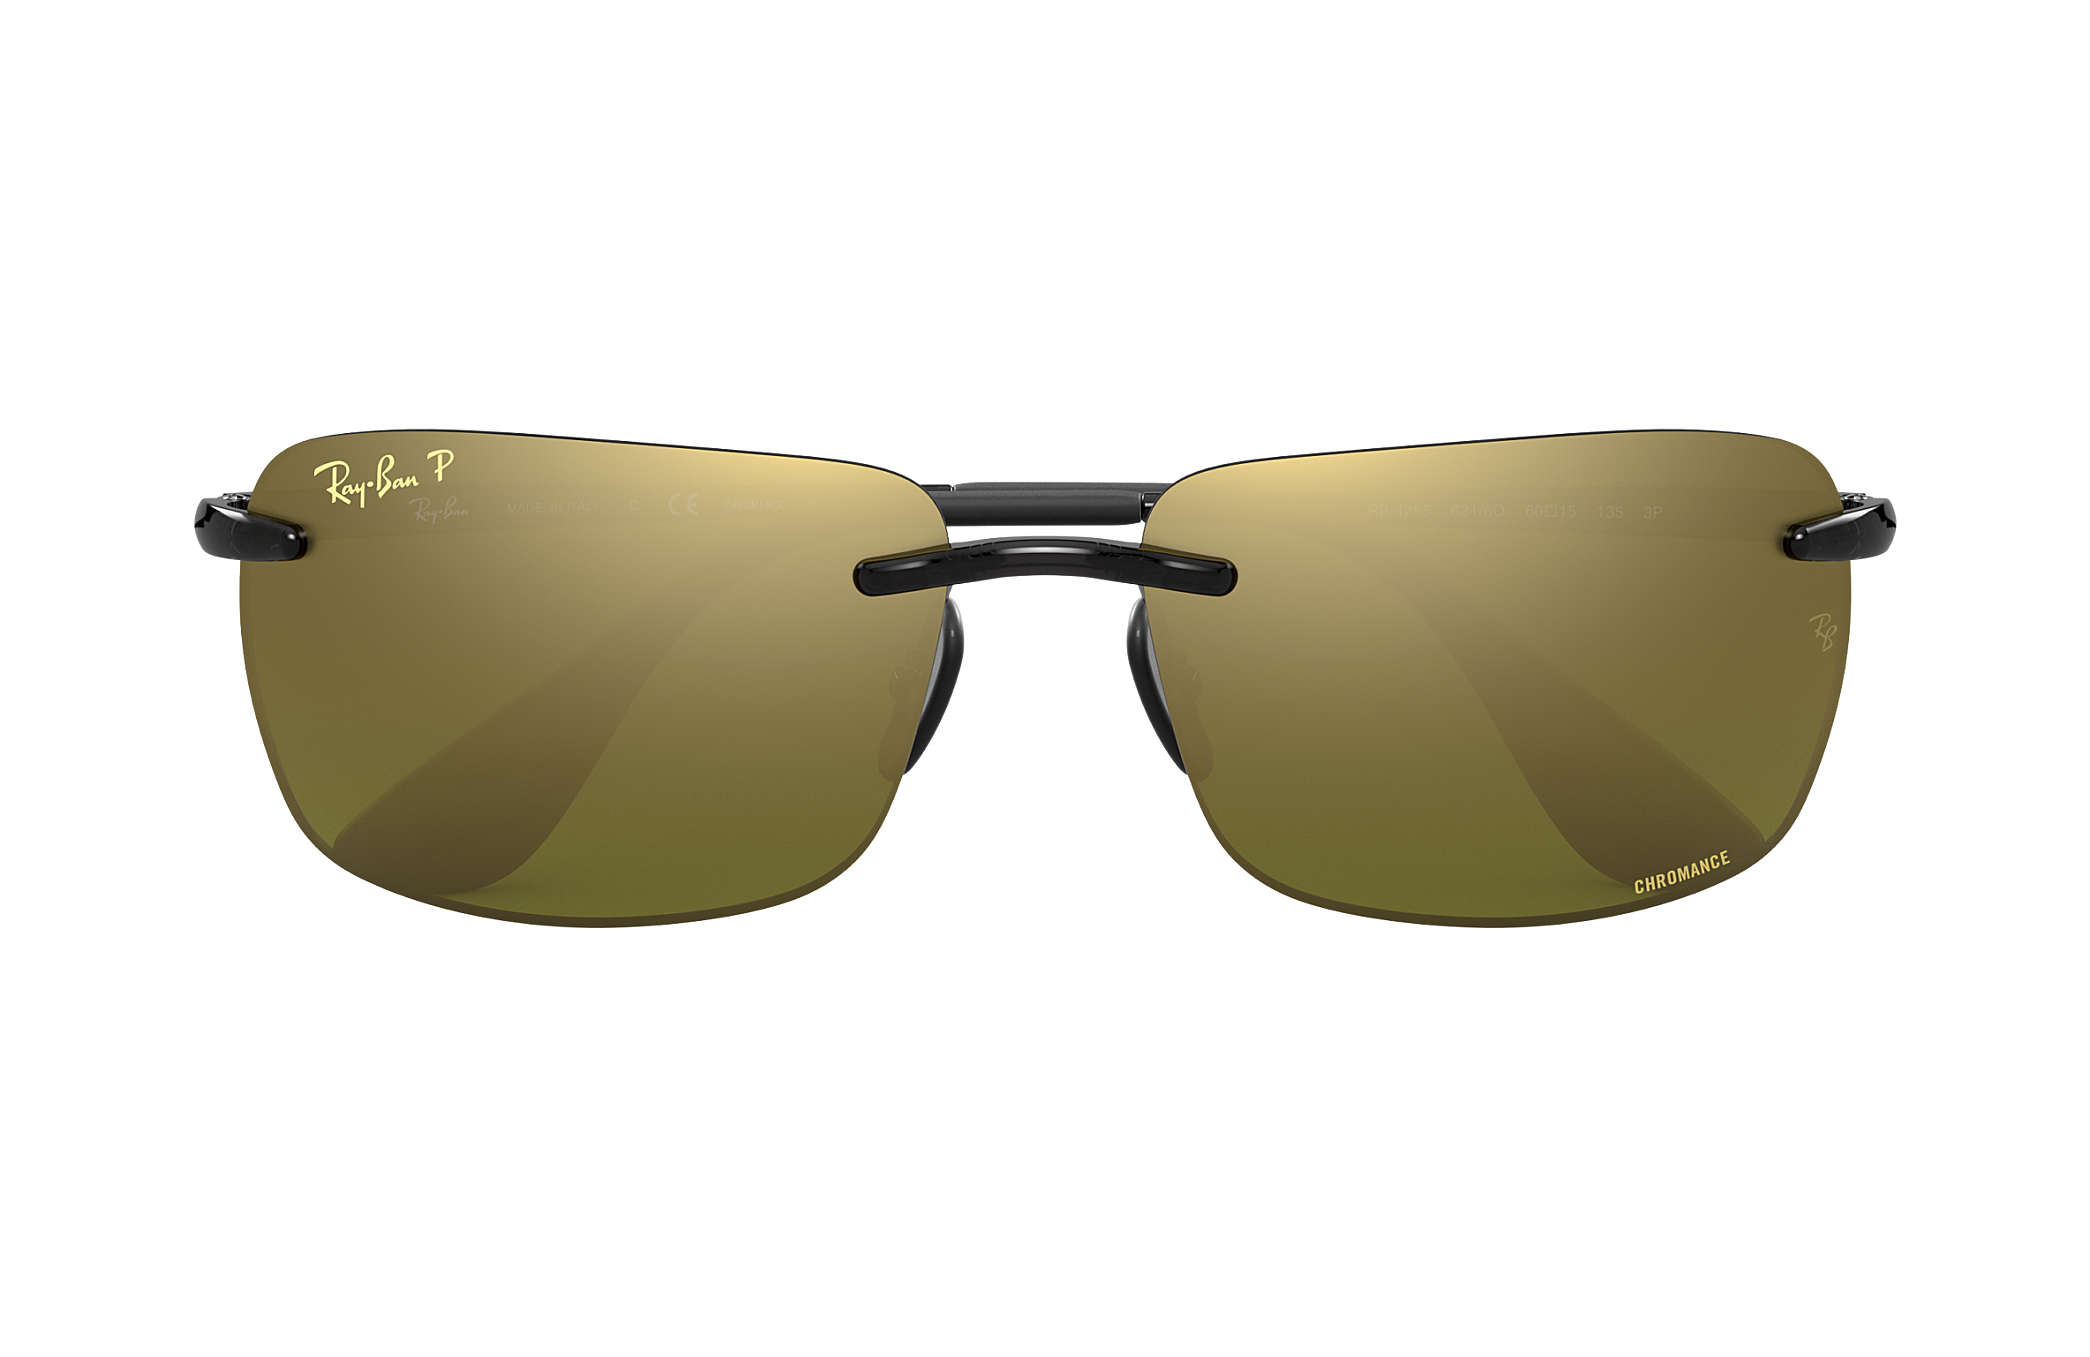 91c0c95029 Ray-Ban Rb4255 Chromance RB4255 Grey - Injected - Green Polarized ...